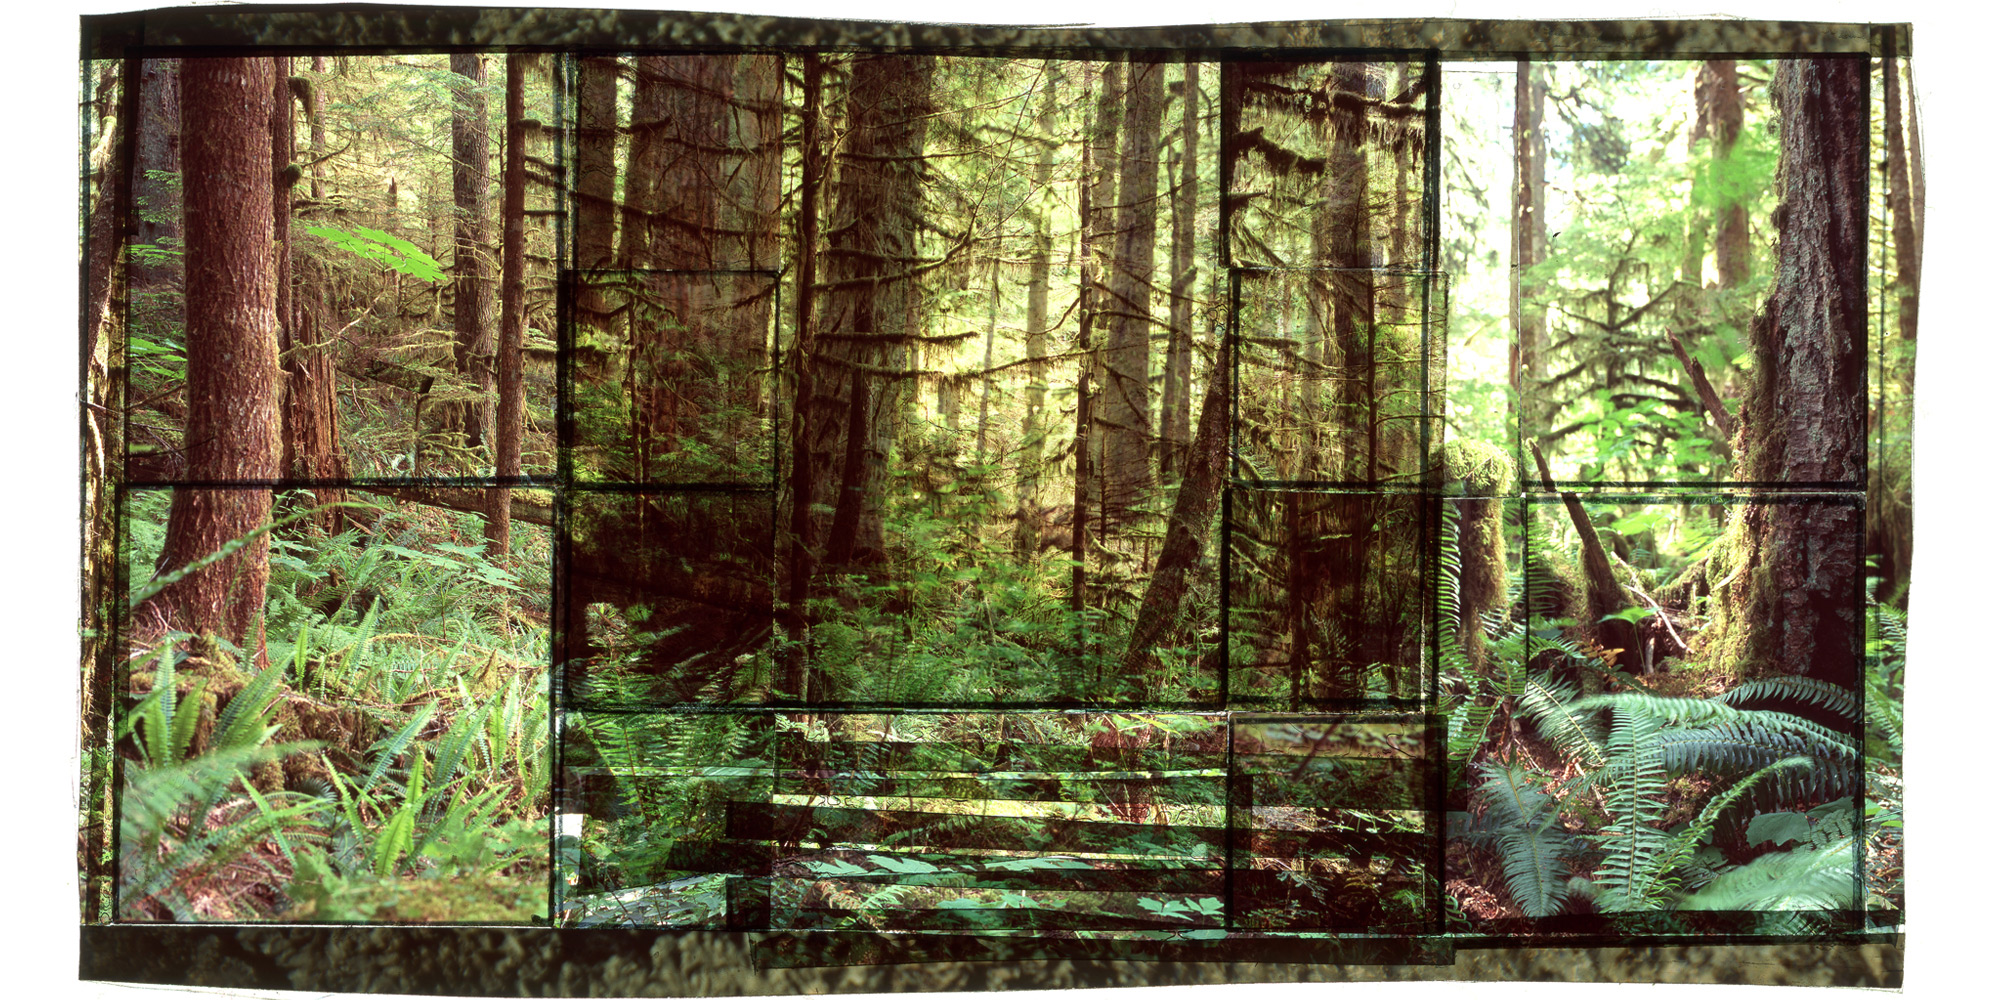 """TIGER MOUNTAIN SF, 1   • 30""""x 17"""" • GICLEE PRINT FROM TRANSPARENCY FILM COMPOSITION"""